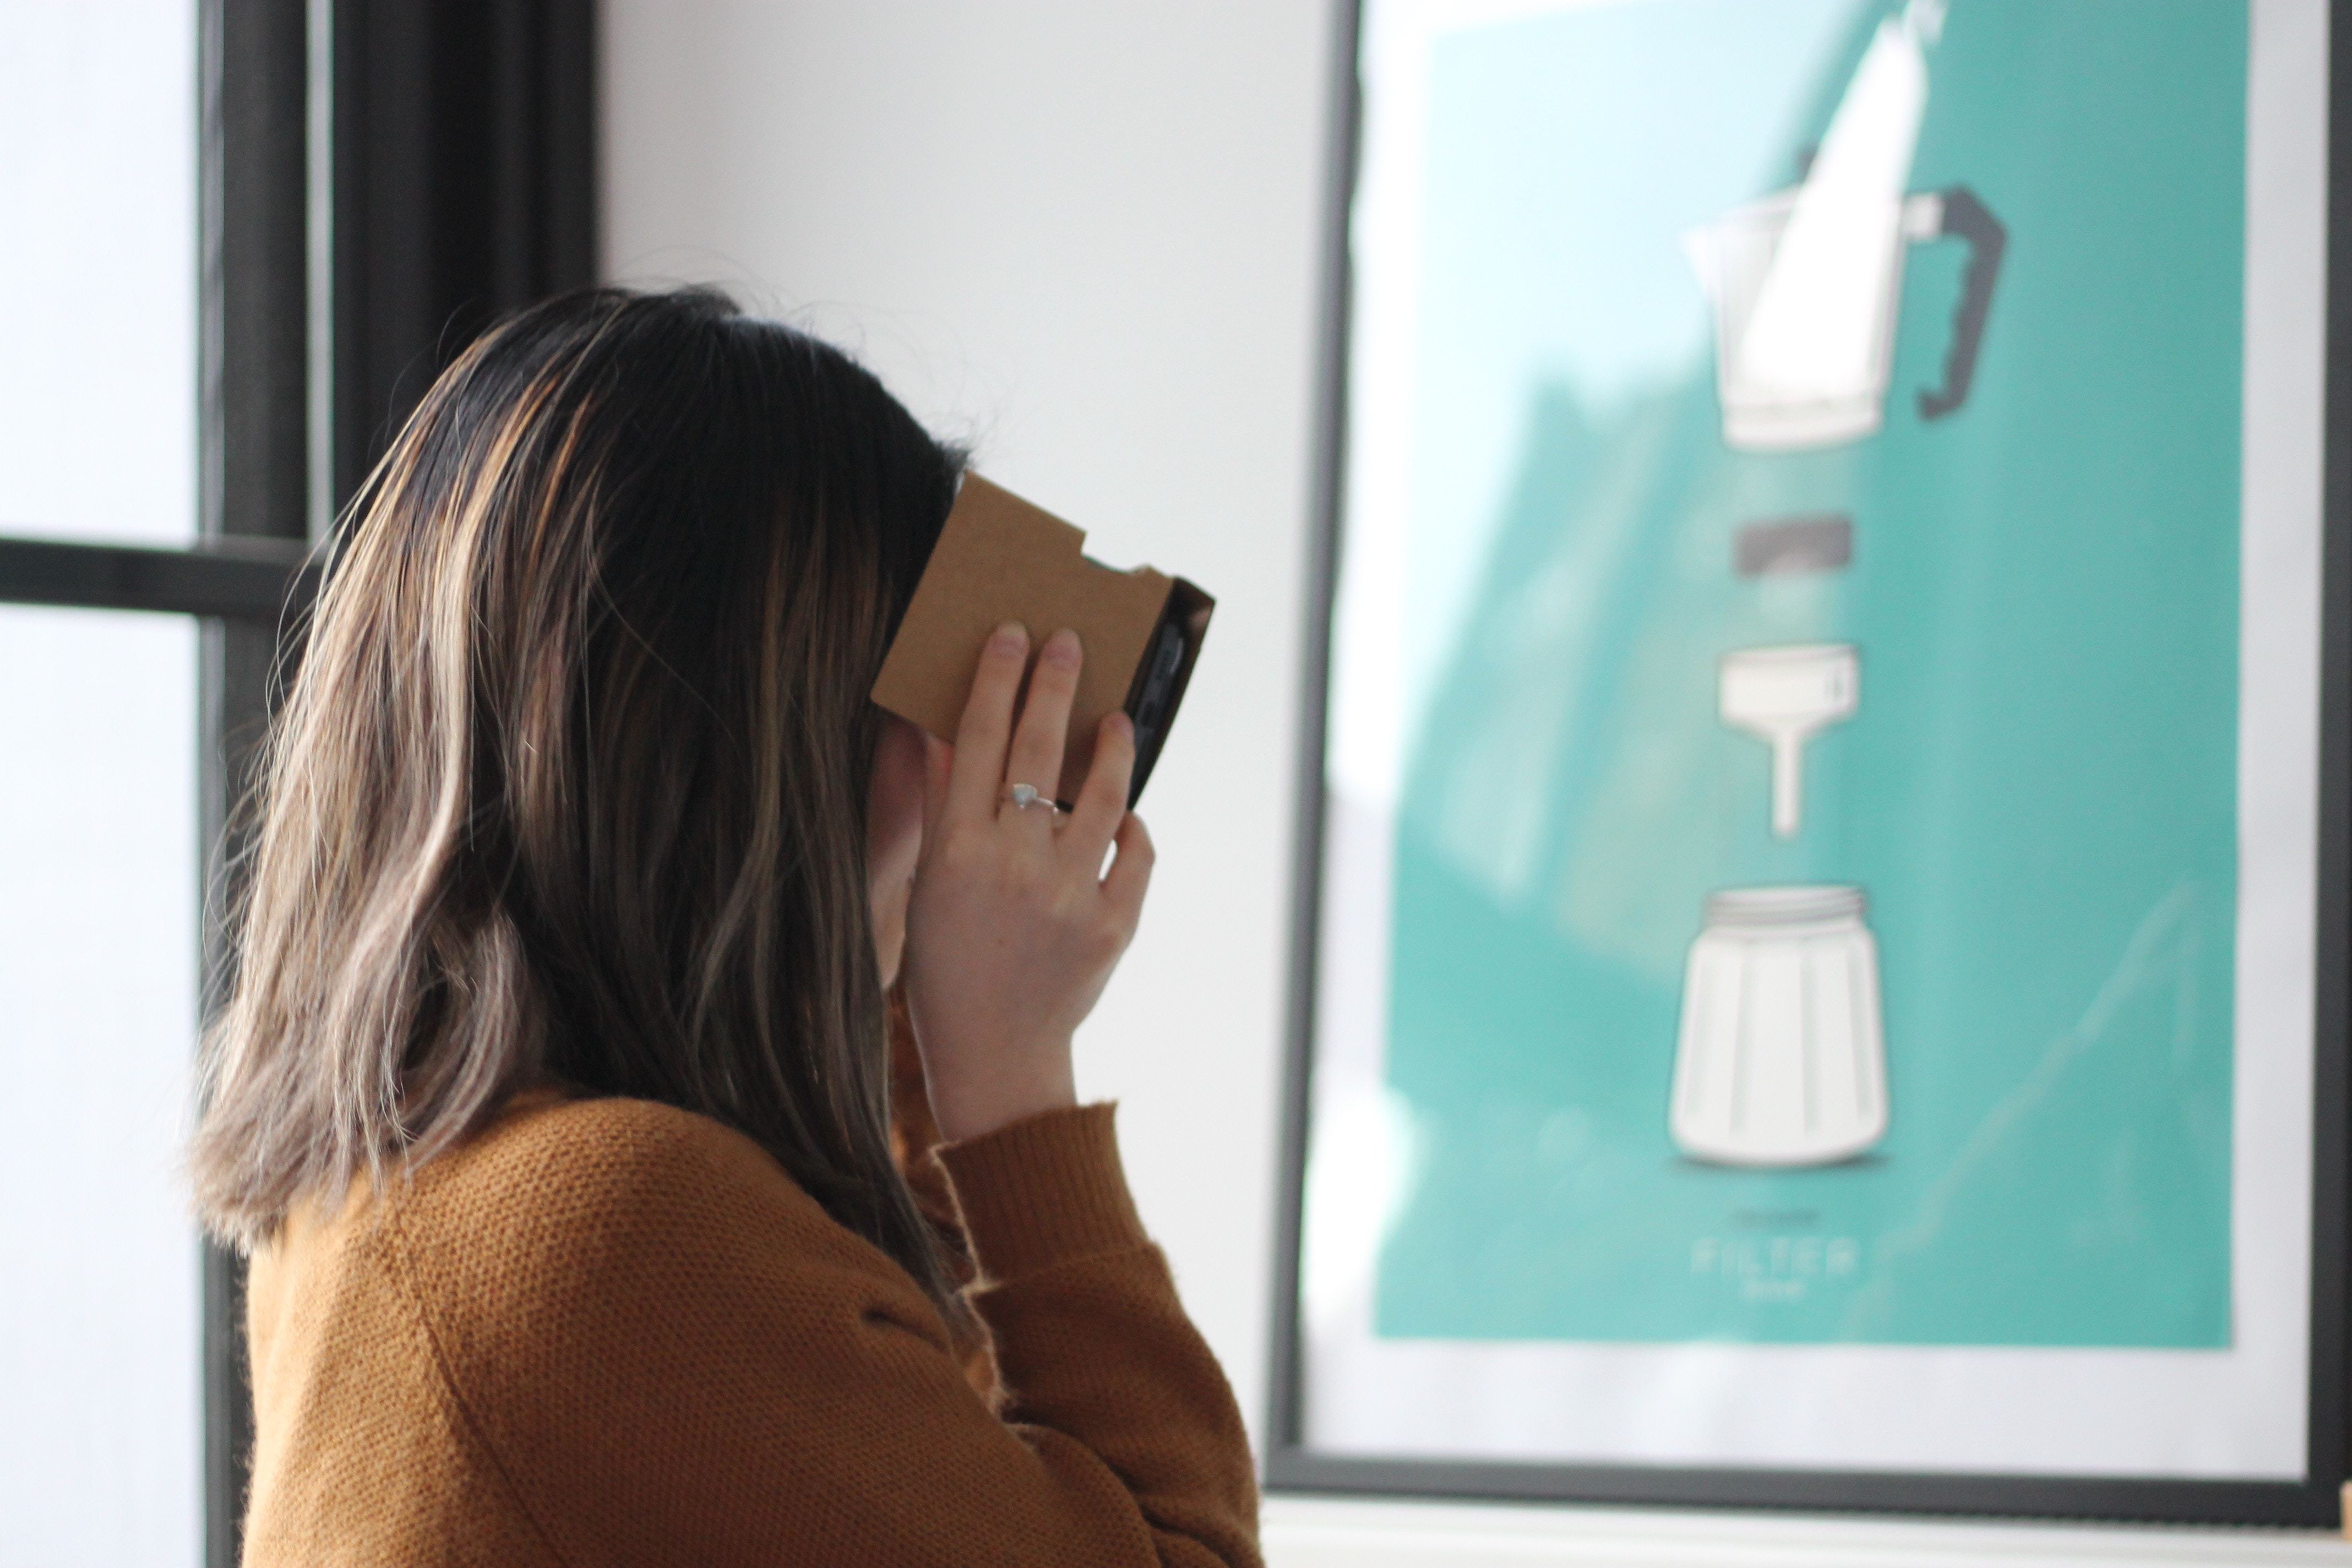 How to Think and Design in VR